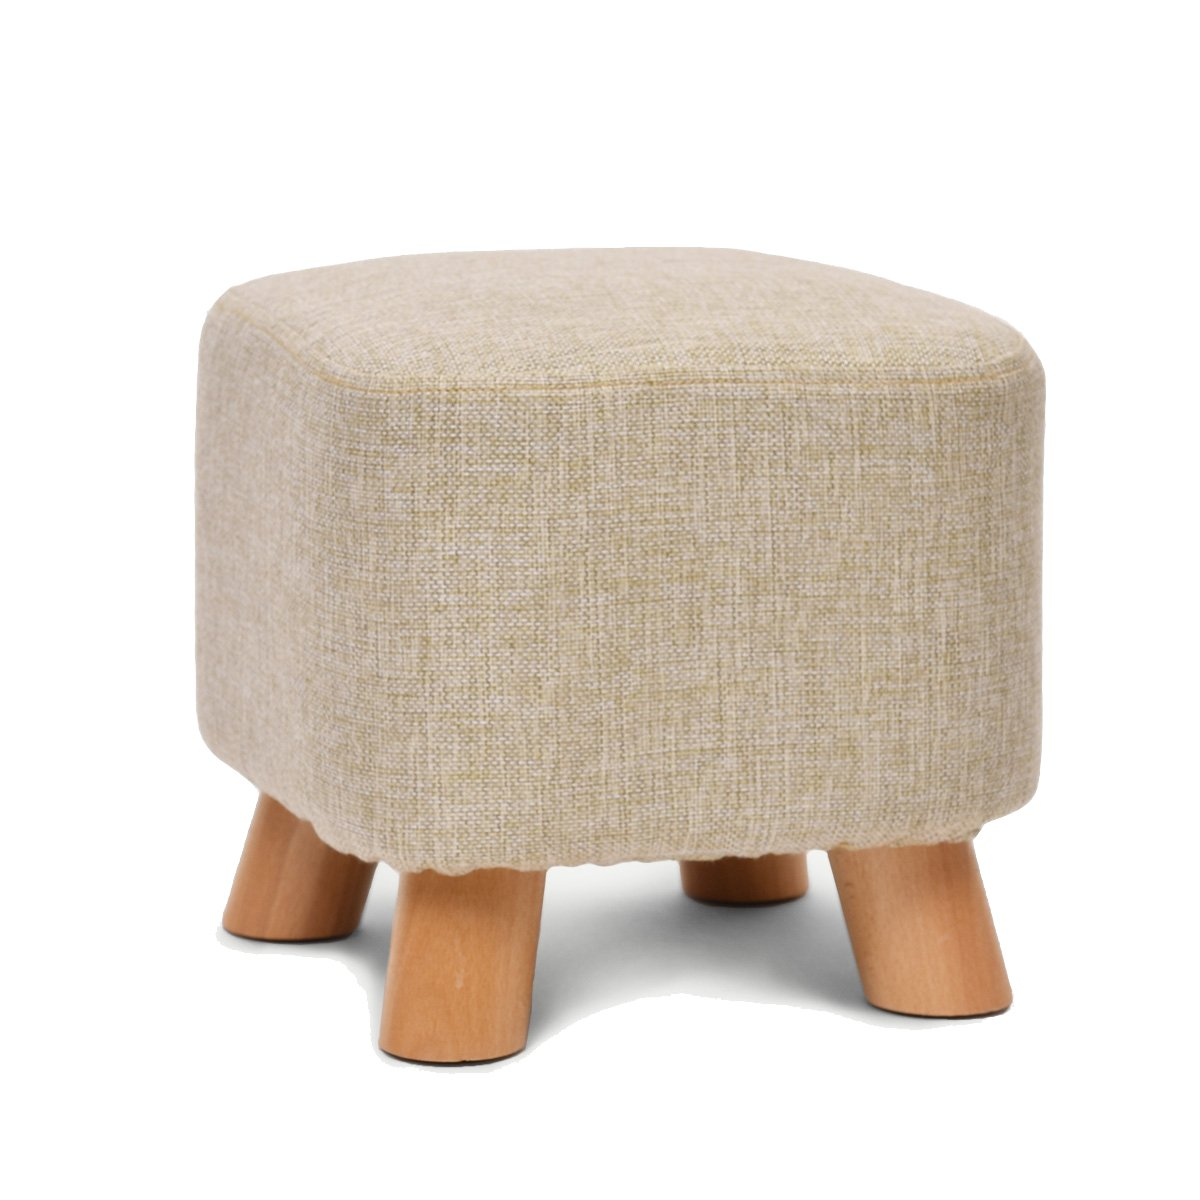 UUSSHOP Square Wooden Wood Support Upholstered Footstool Footrest Ottoman Pouffe Chair Stool Fabric Cover 4 Legs and Removable Linen Cover (Beige)